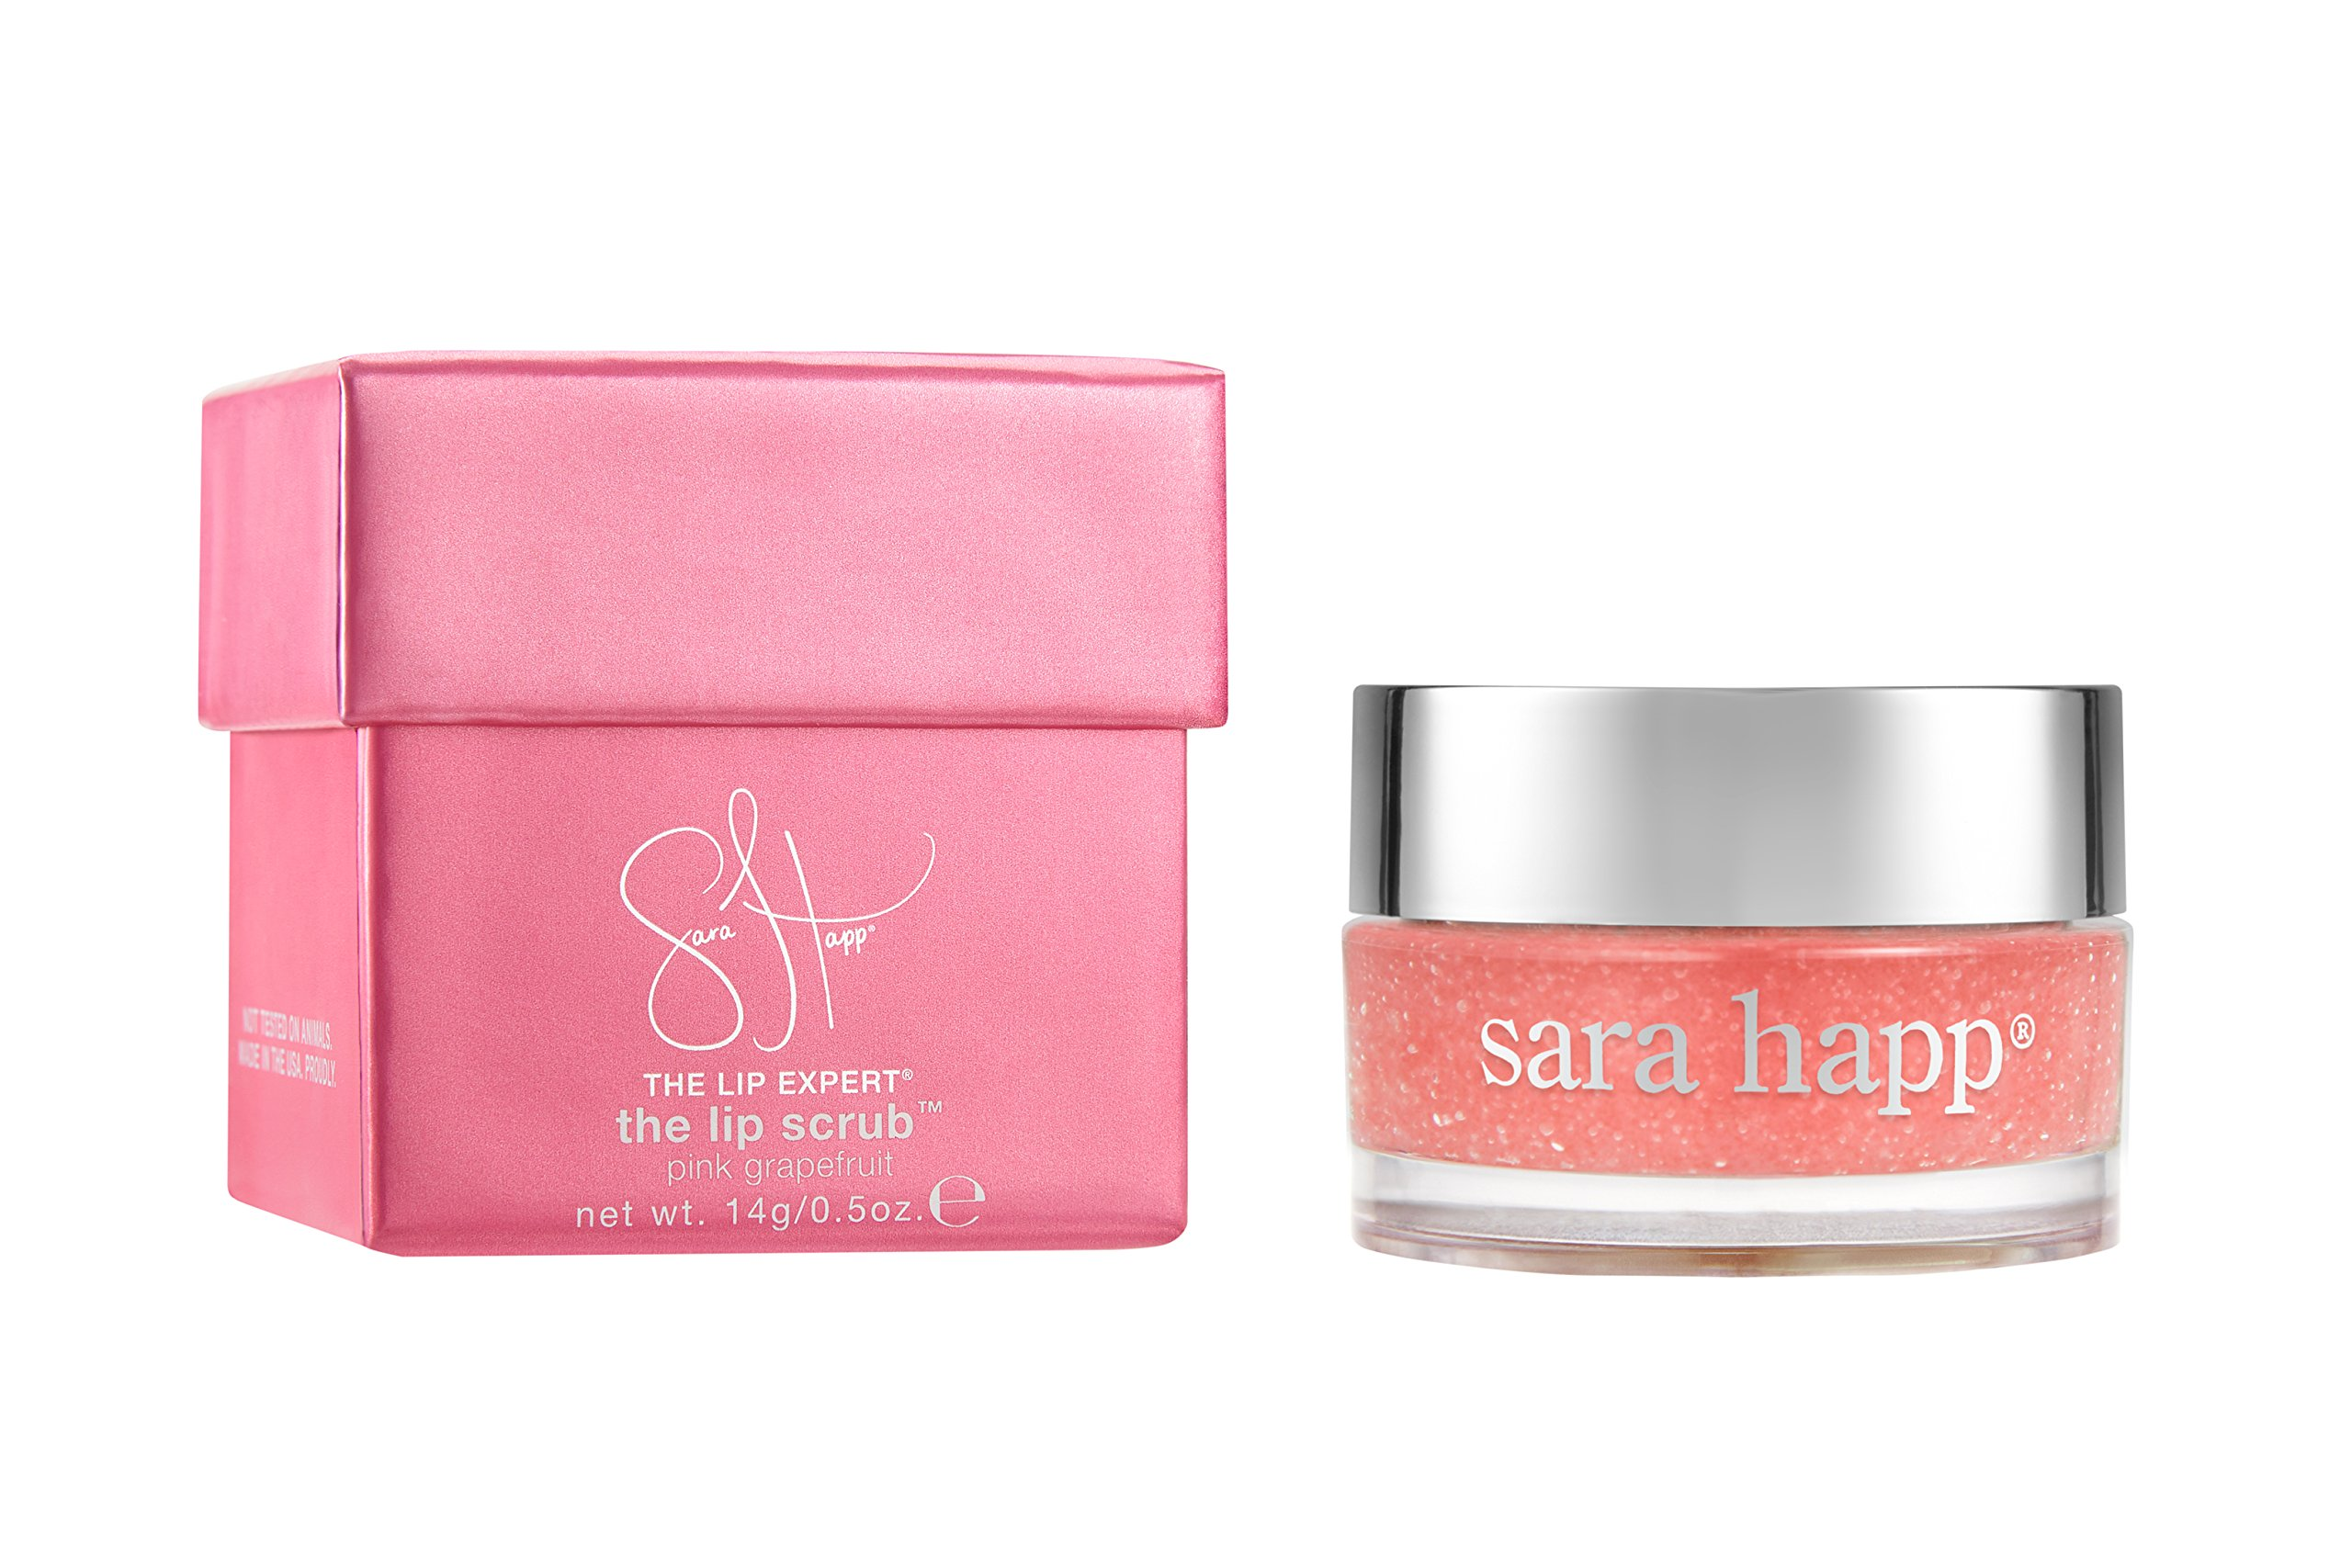 sara happ The Lip Scrub, Pink Grapefruit, 0.5 oz.